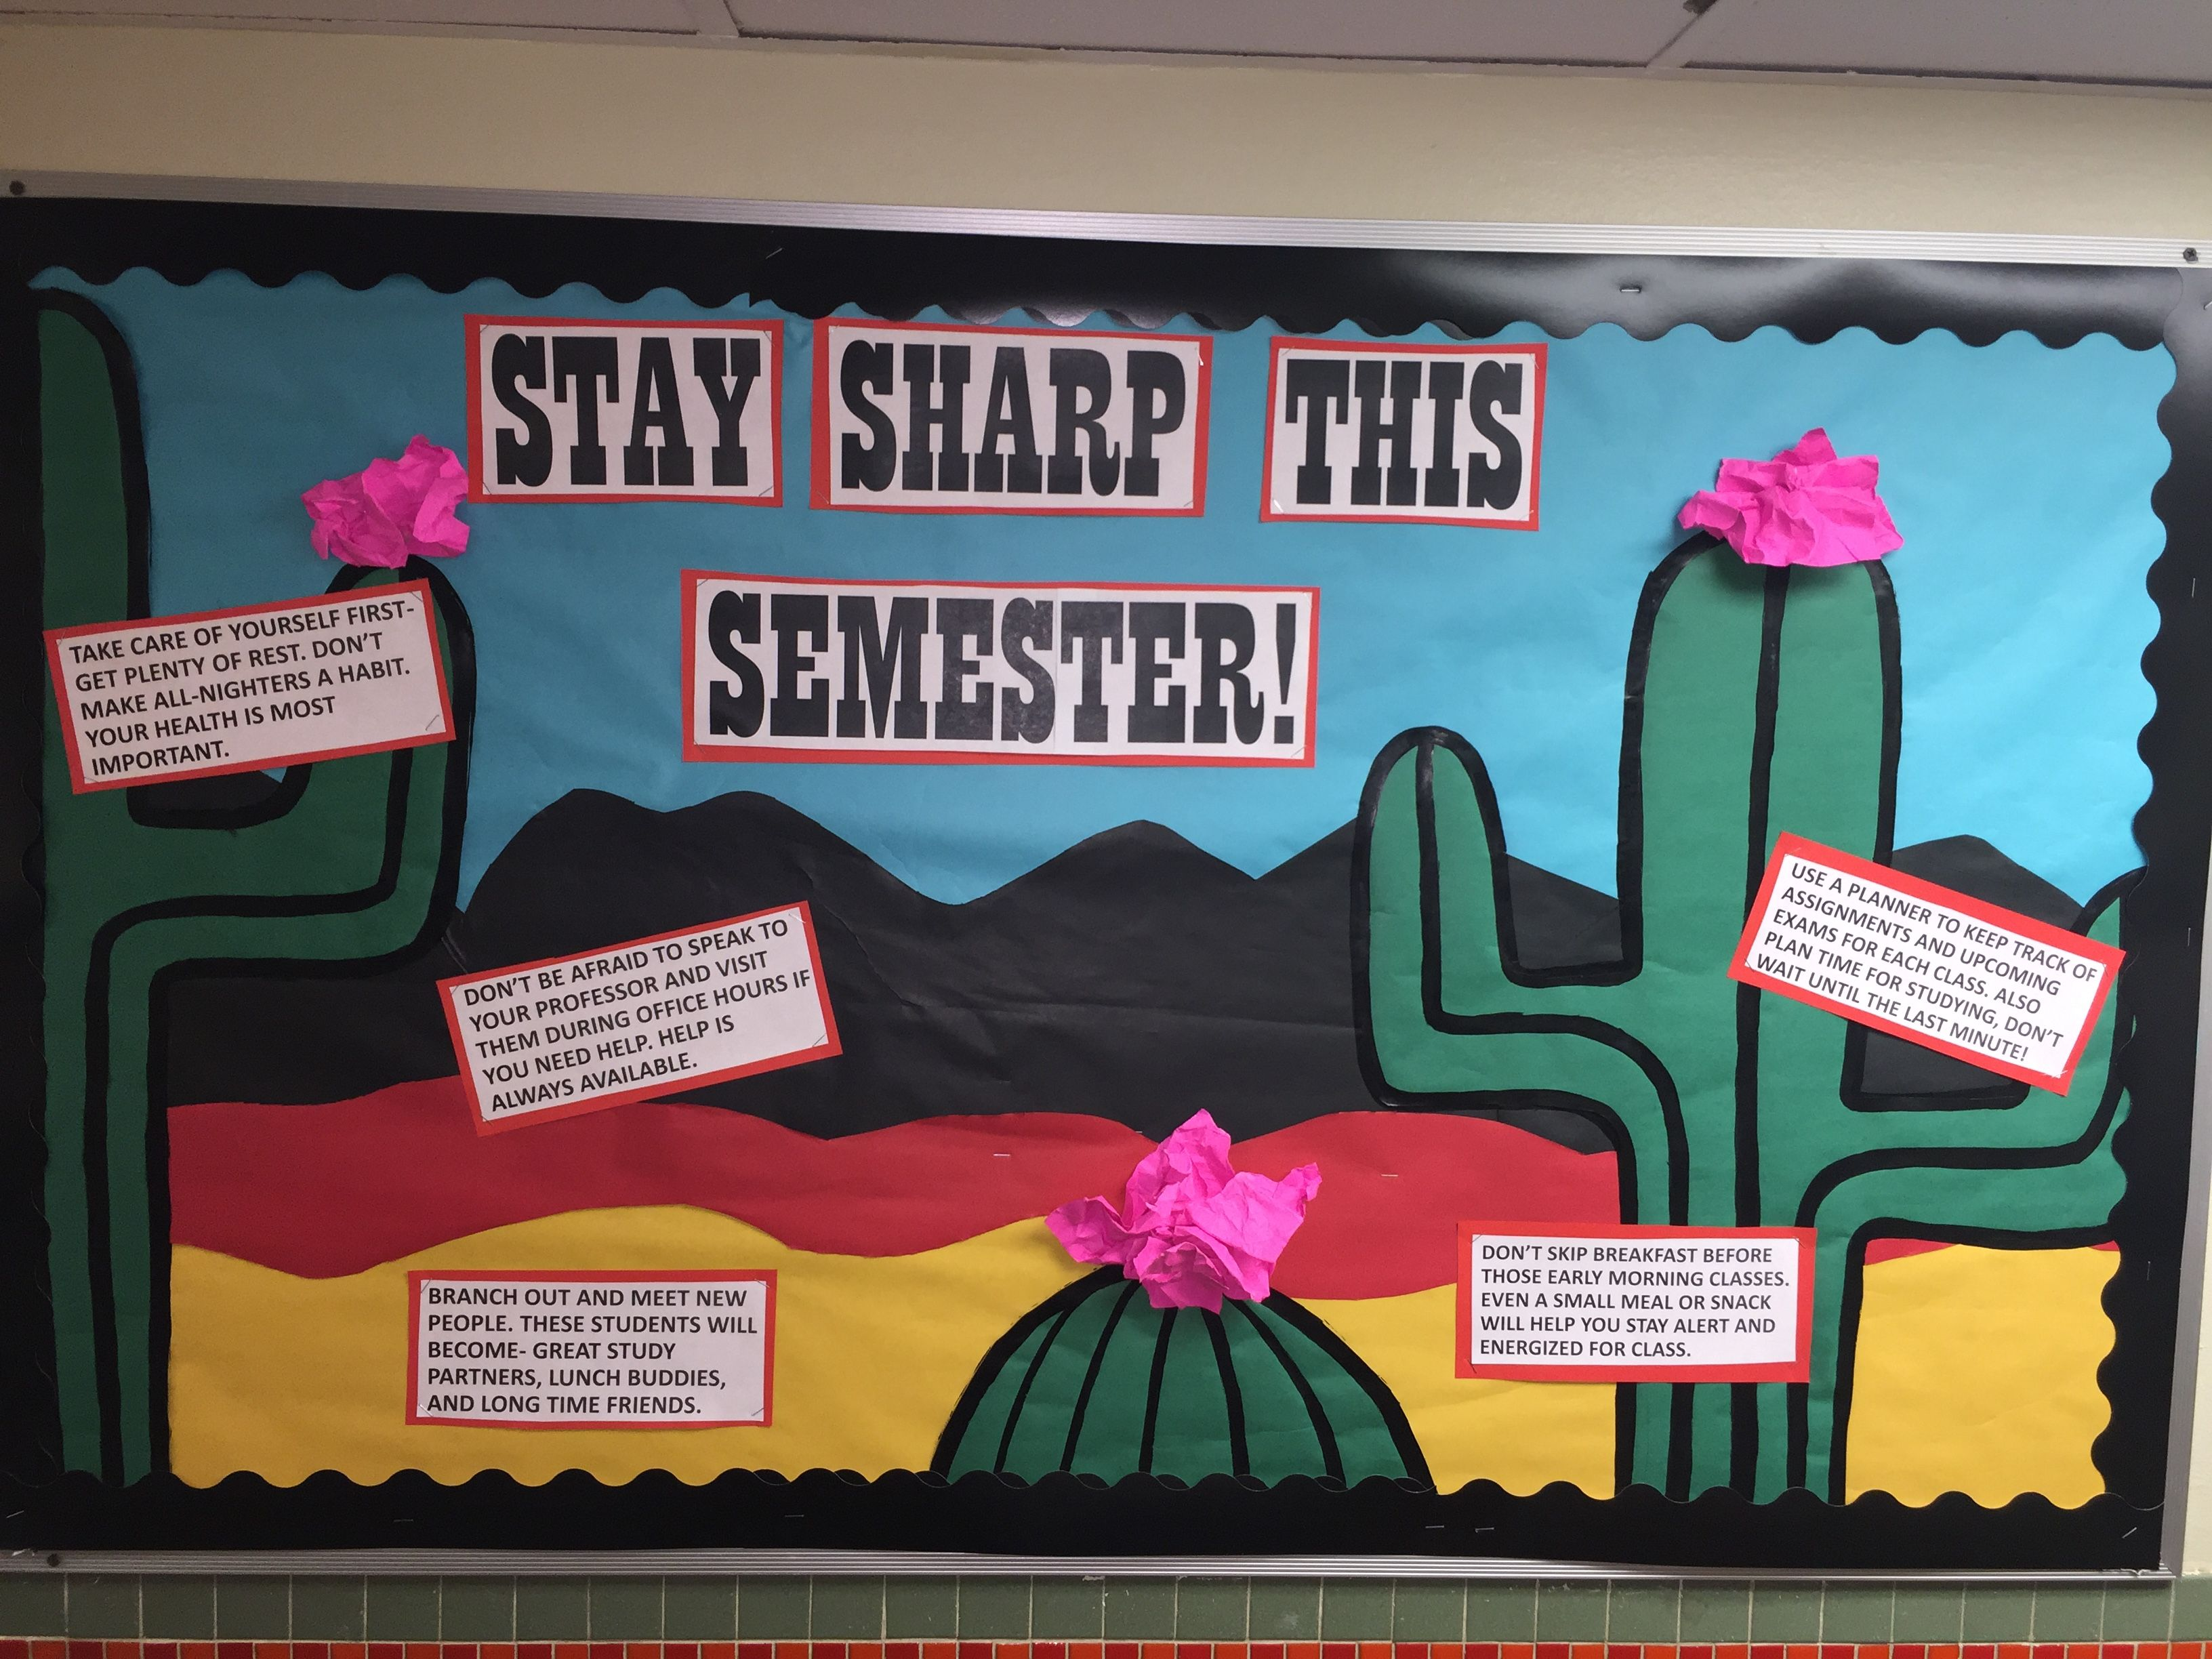 Classroom Bulletin Board Ideas For January ~ Stay sharp this semester cactus themed board ra ca